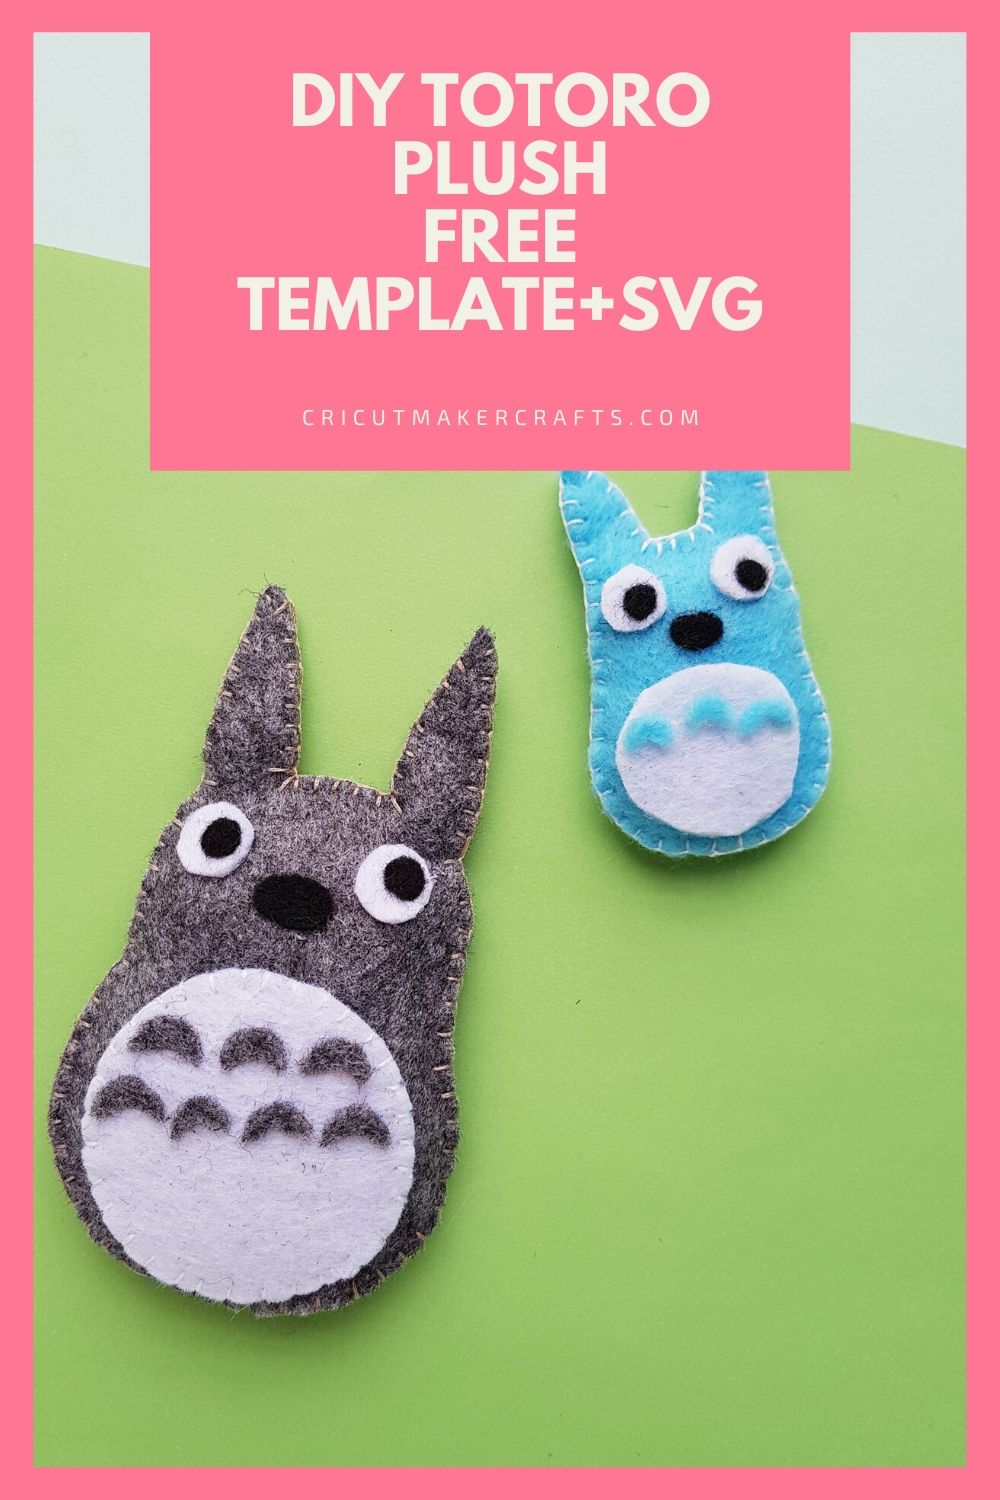 Two totoros, one grey totoro one blue small totoro